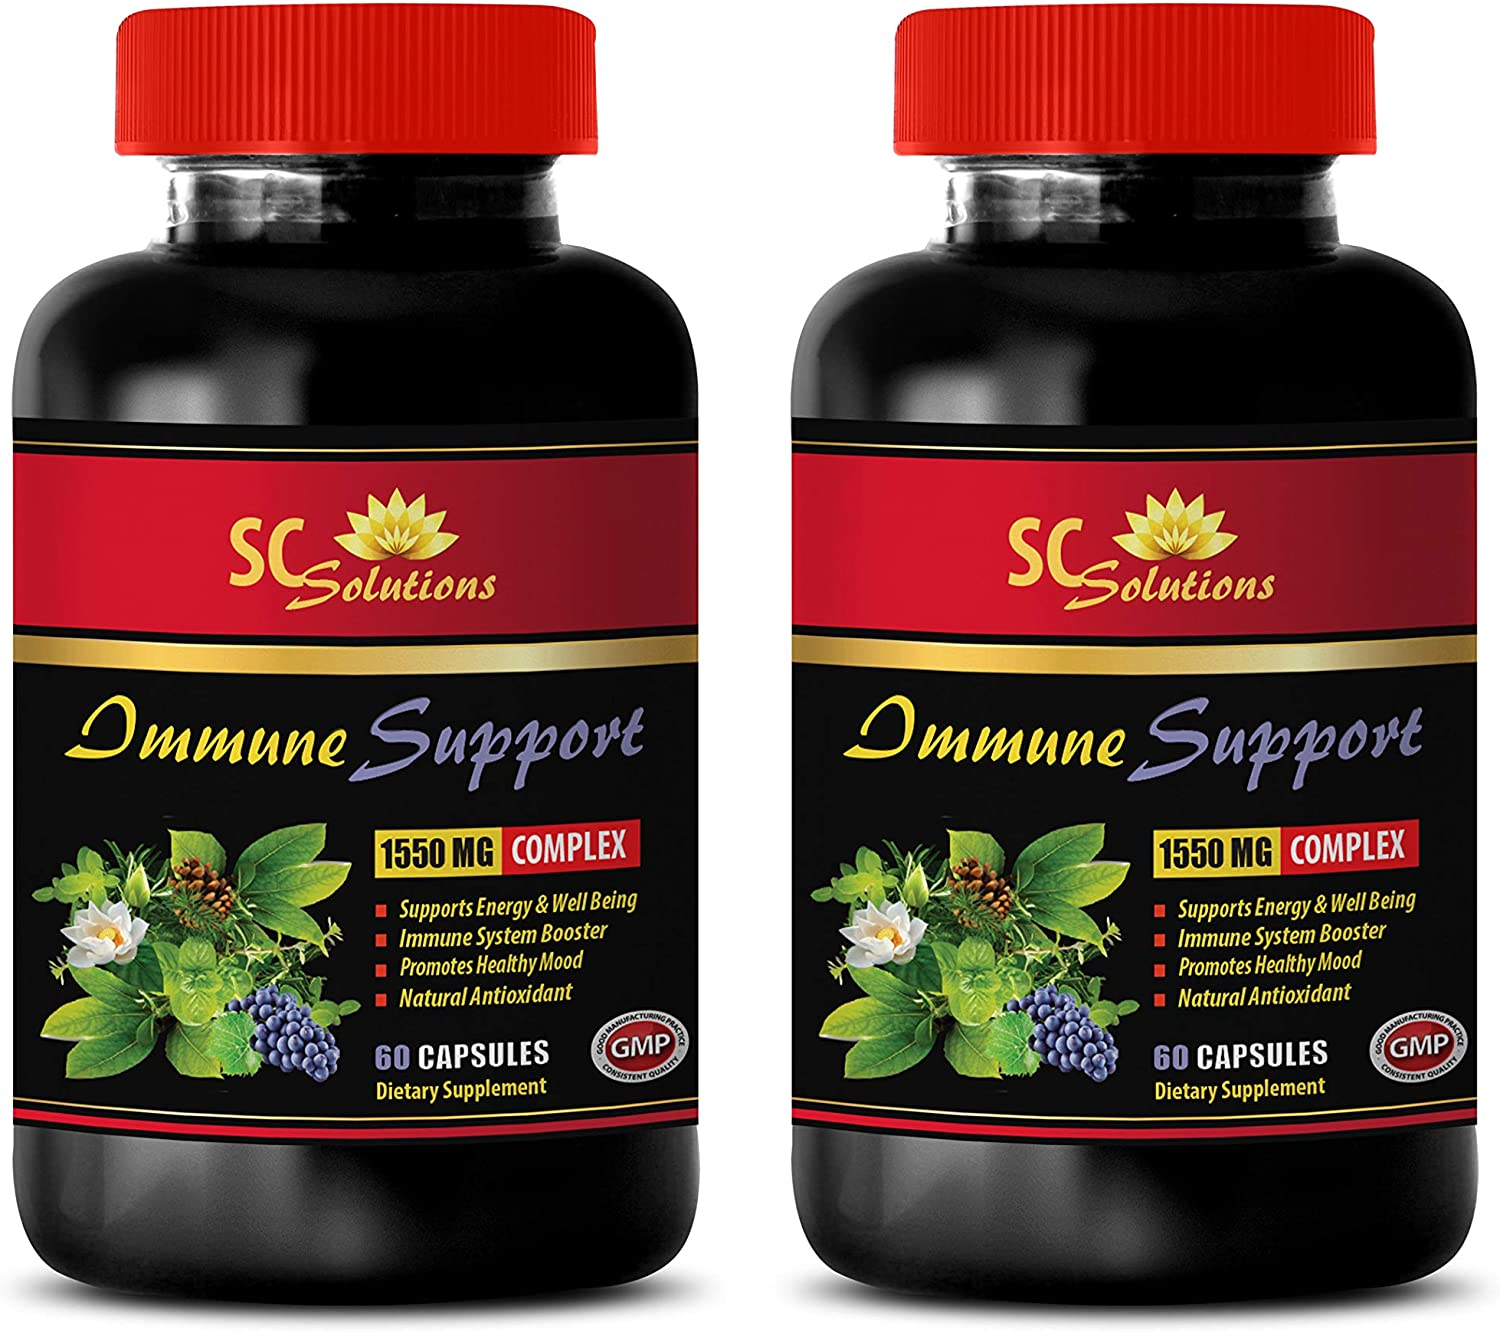 free antioxidant Formula Limited price - Immune Support Mg Complex 1550 Turmeric